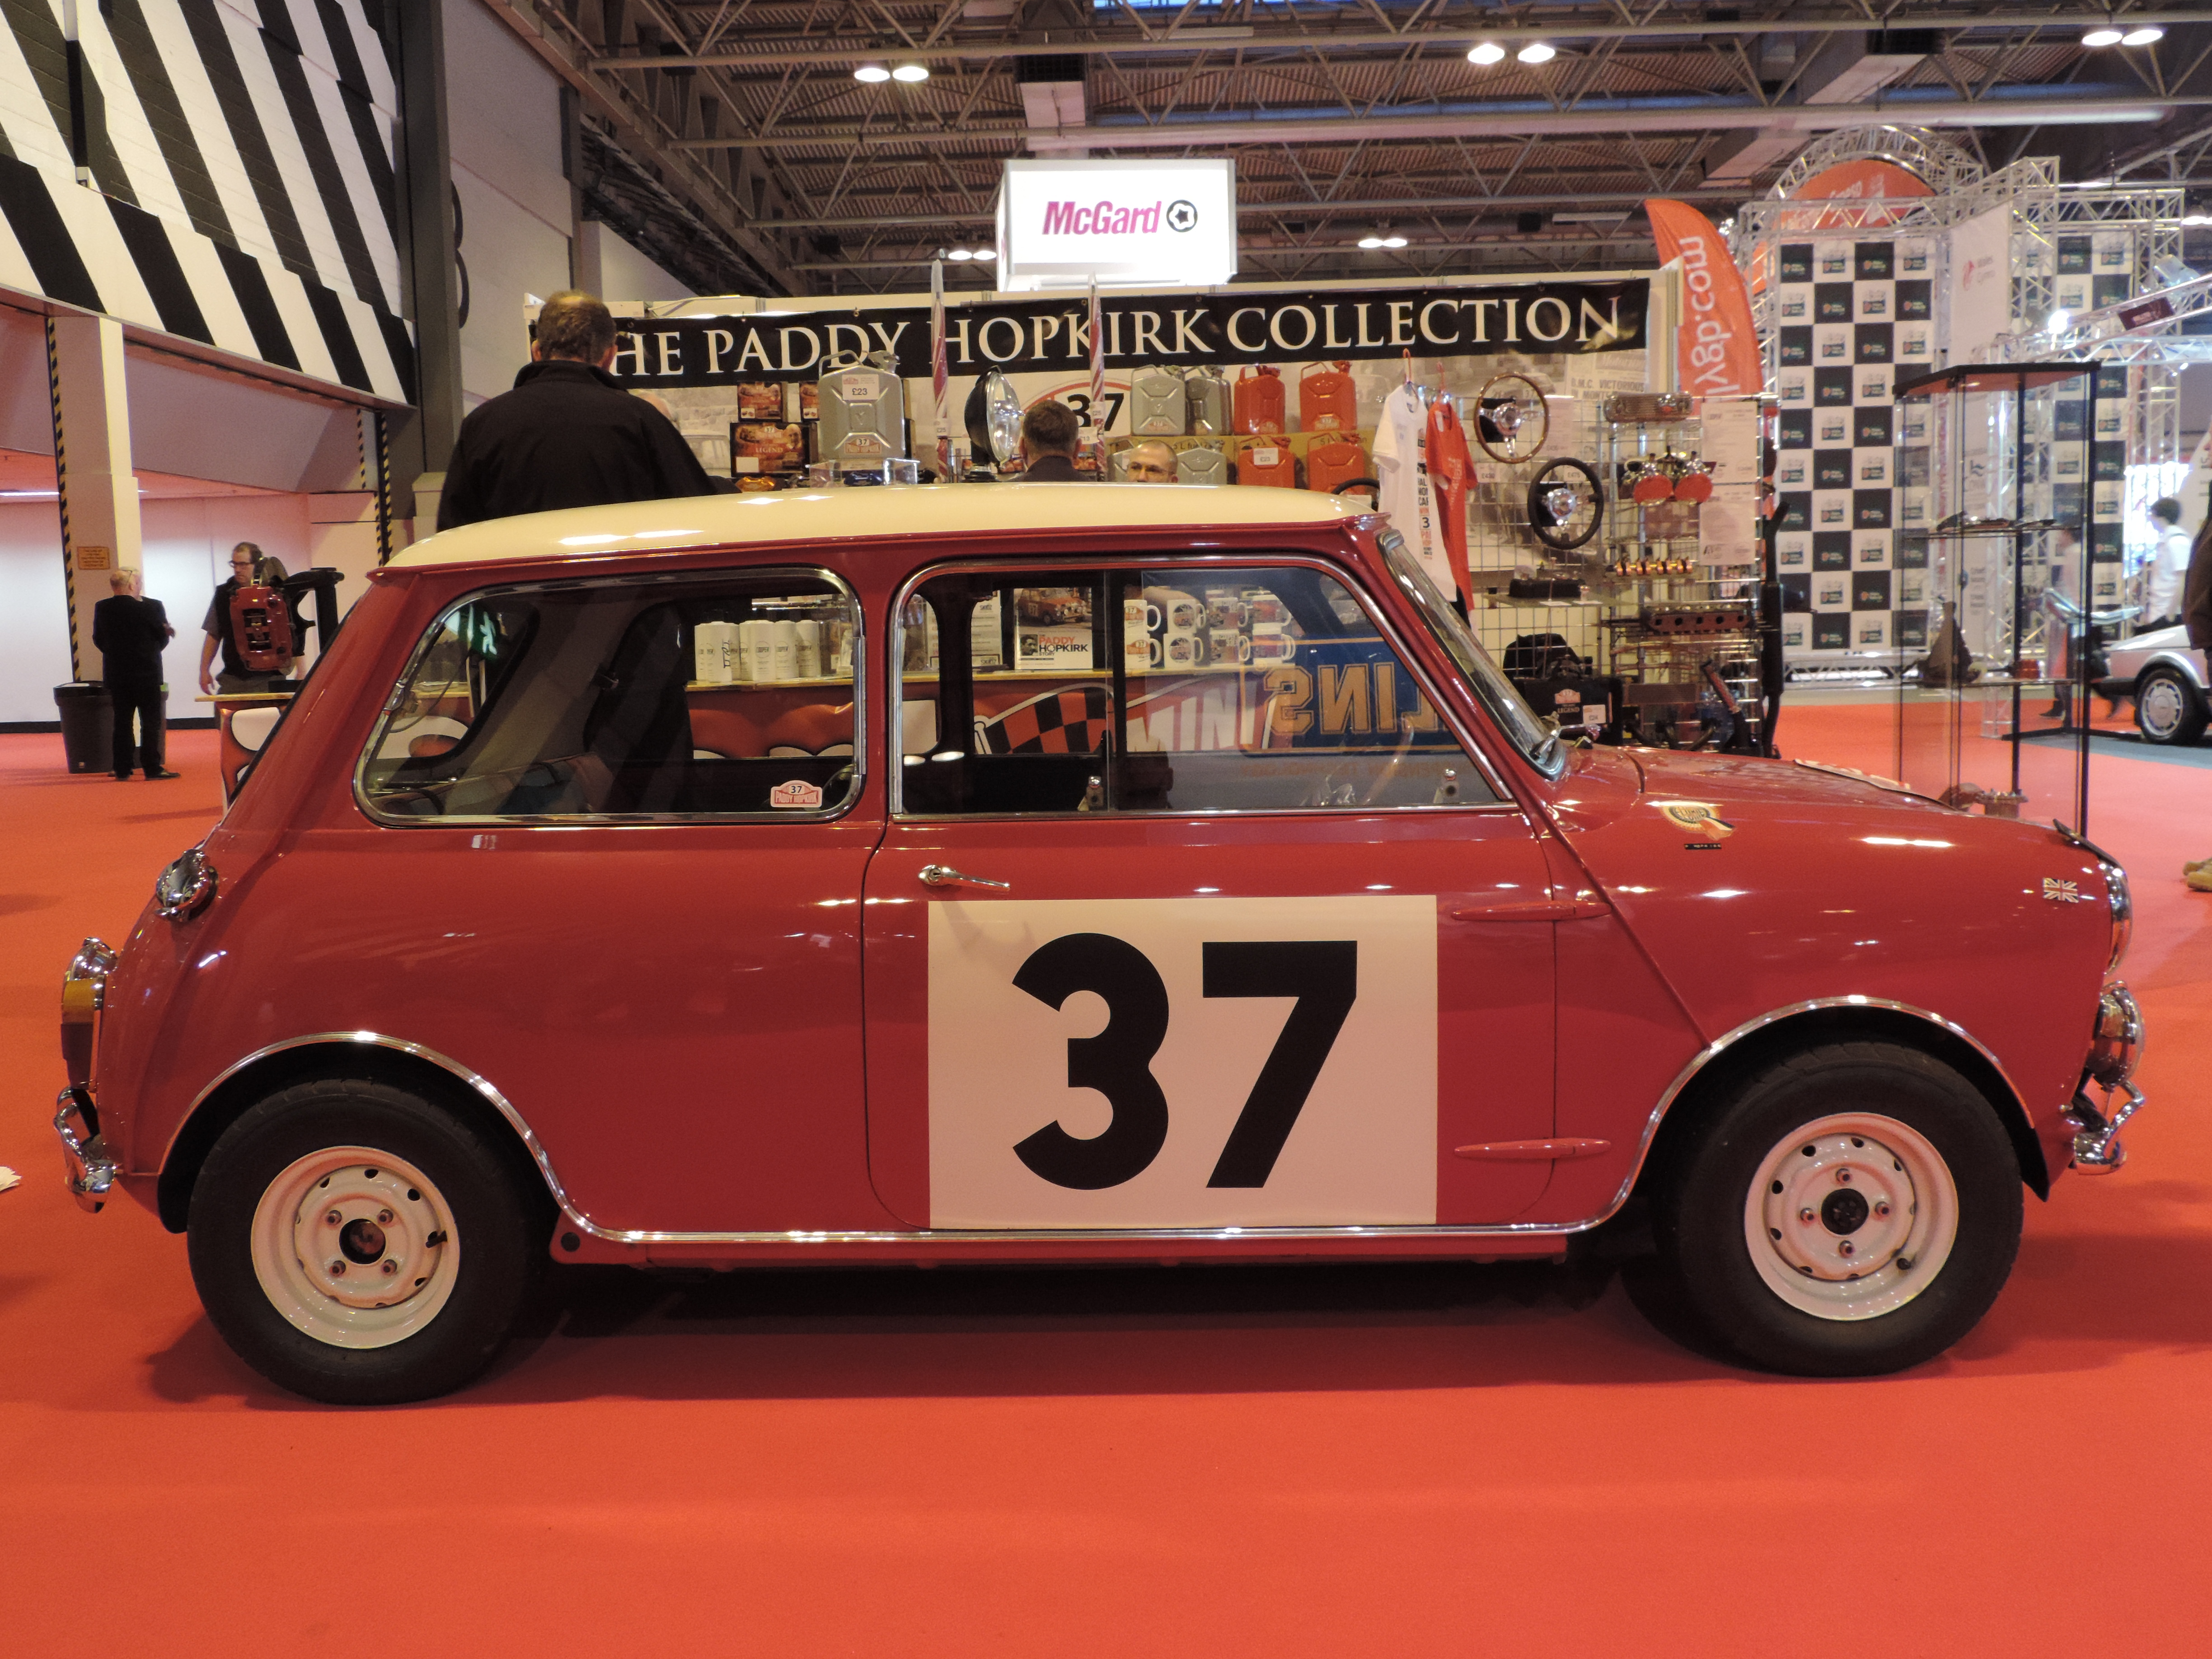 Paddy Hopkirk Collection